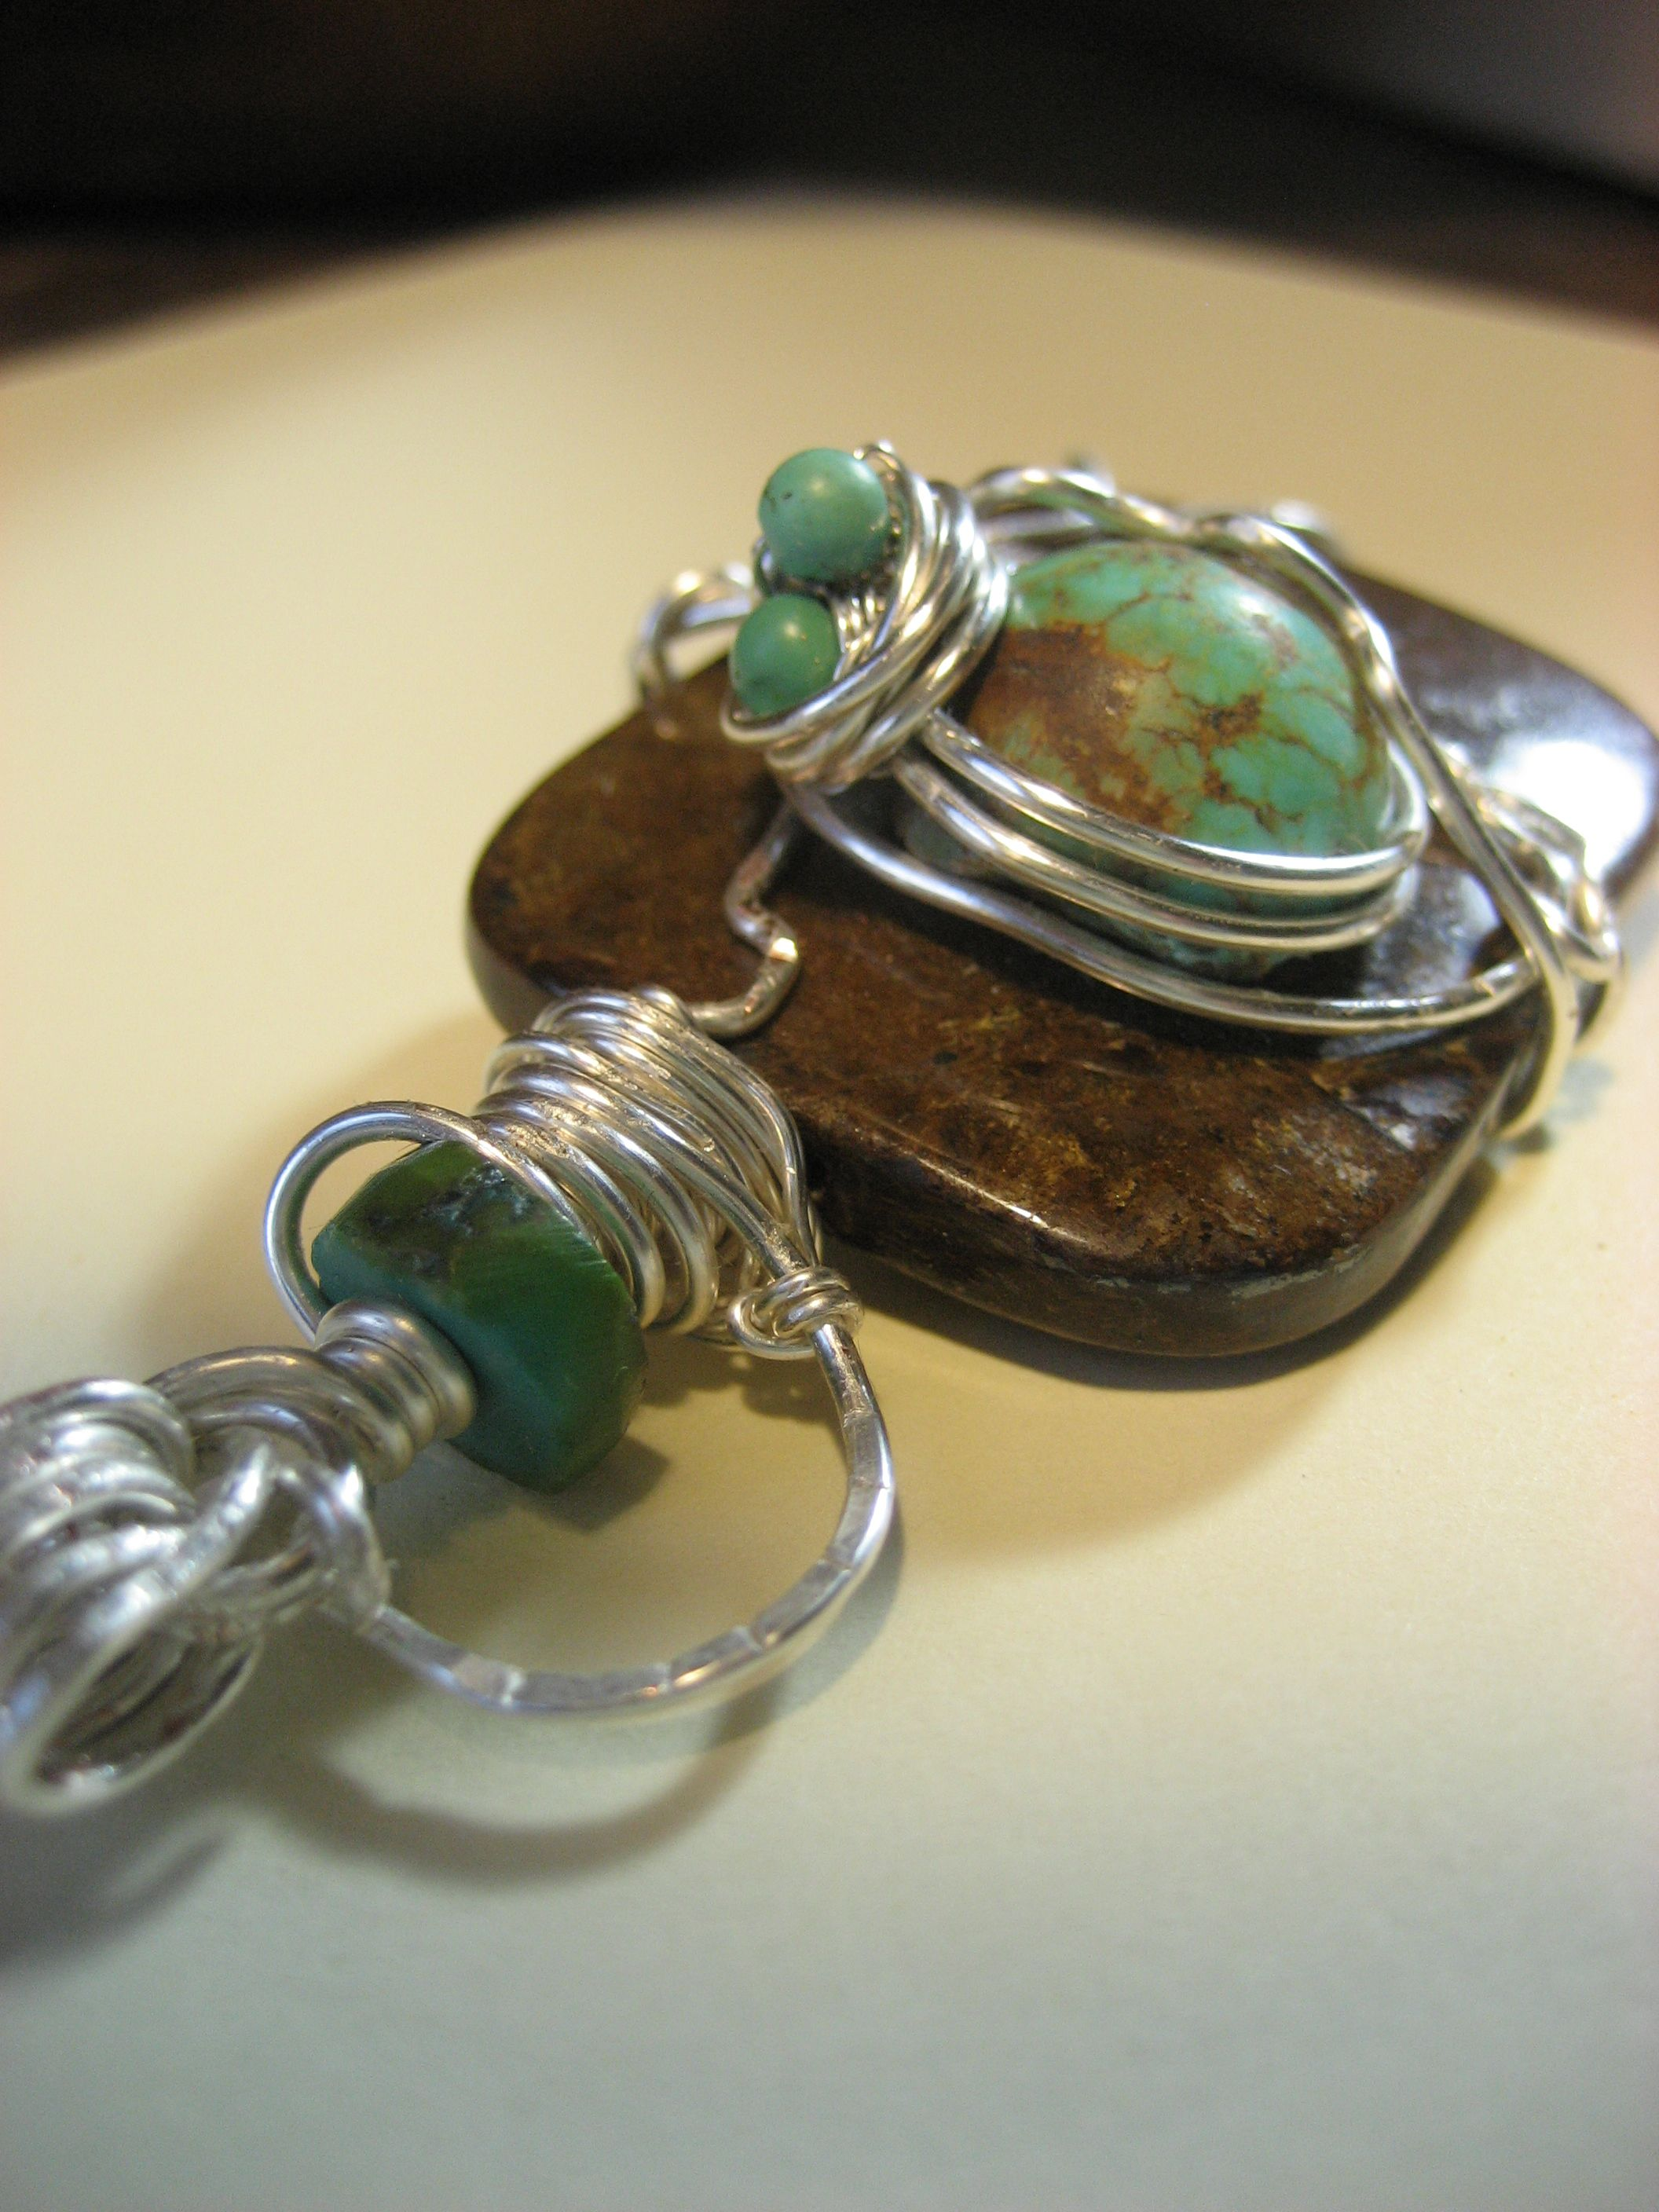 Now what would you do with this bronzite, turquoise and silver lover- hmmmm